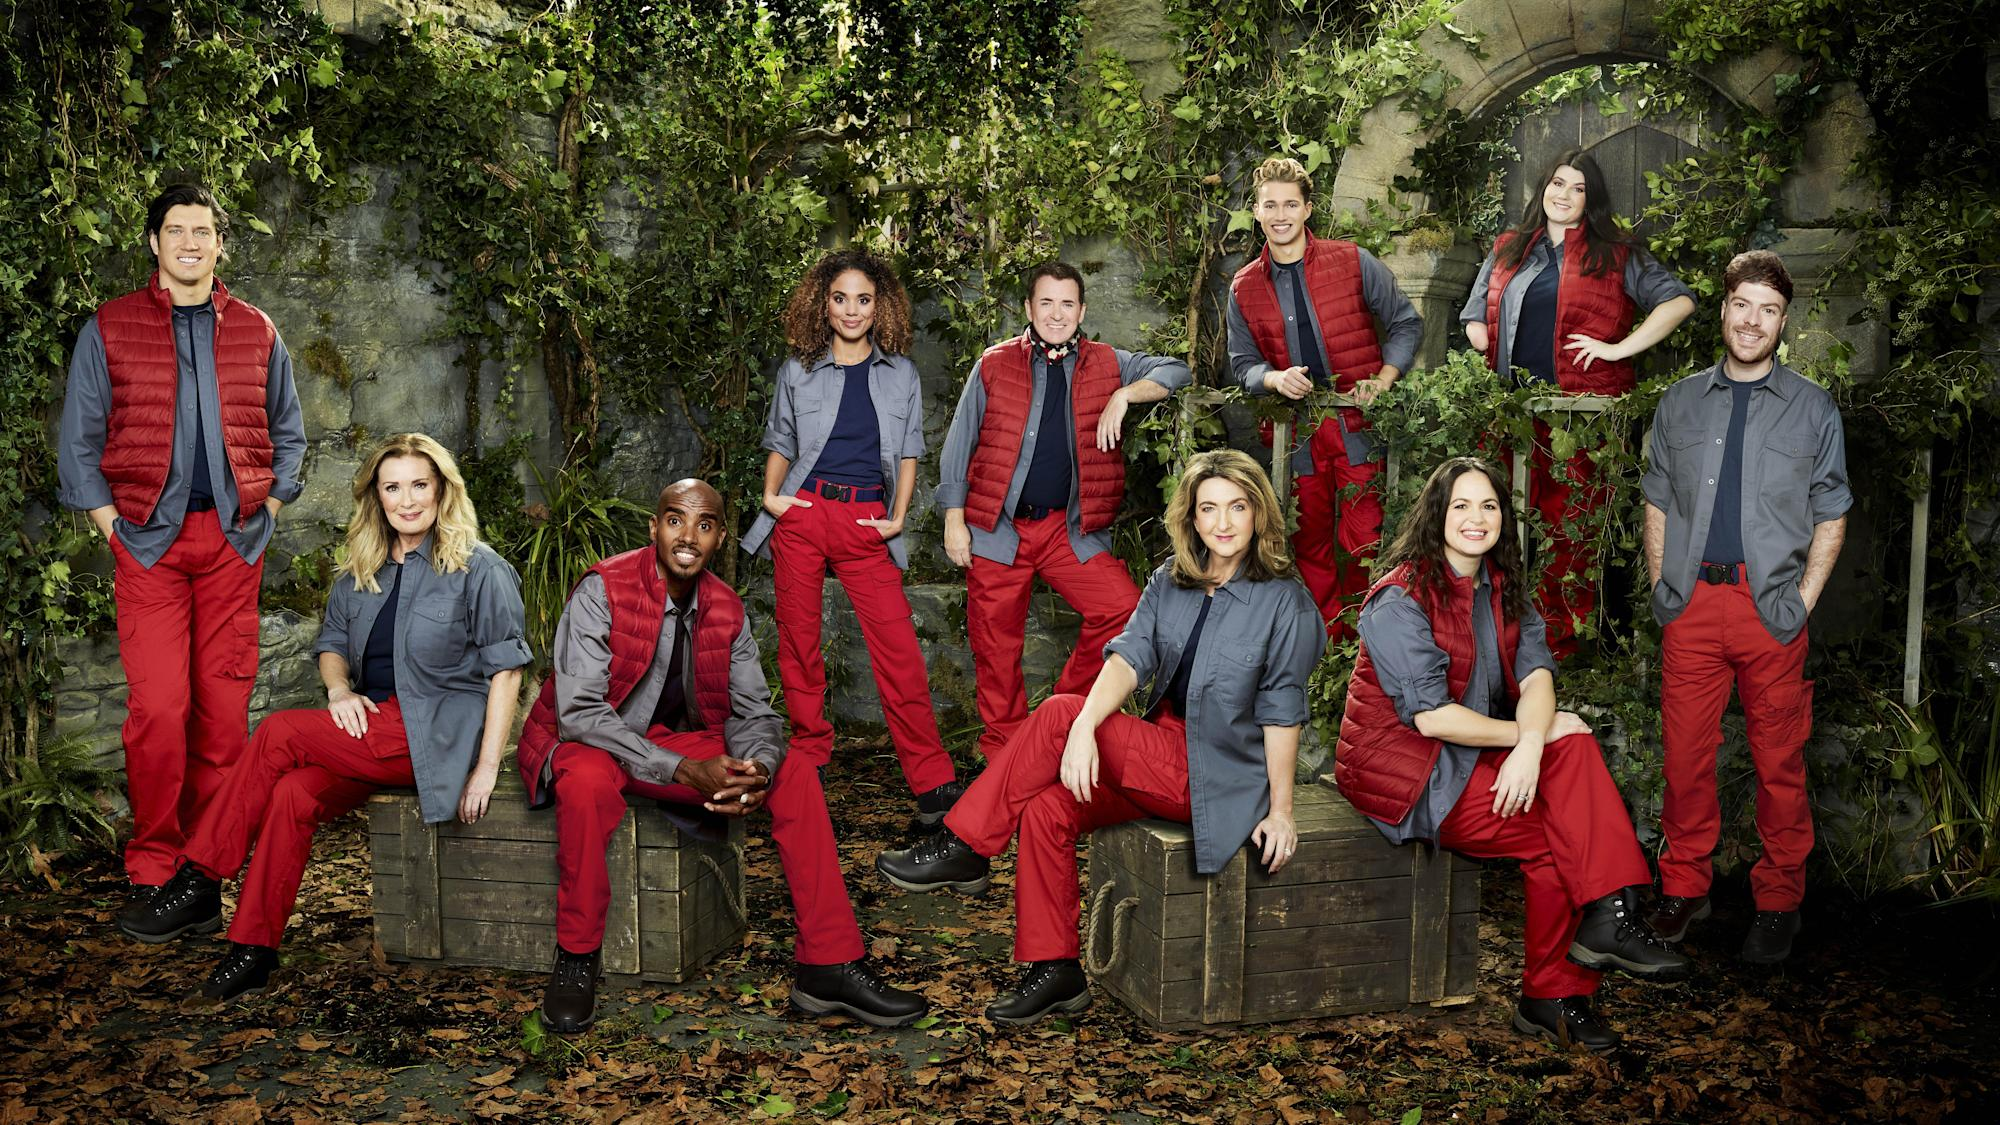 This year's I'm A Celebrity stars come together as new series kicks off